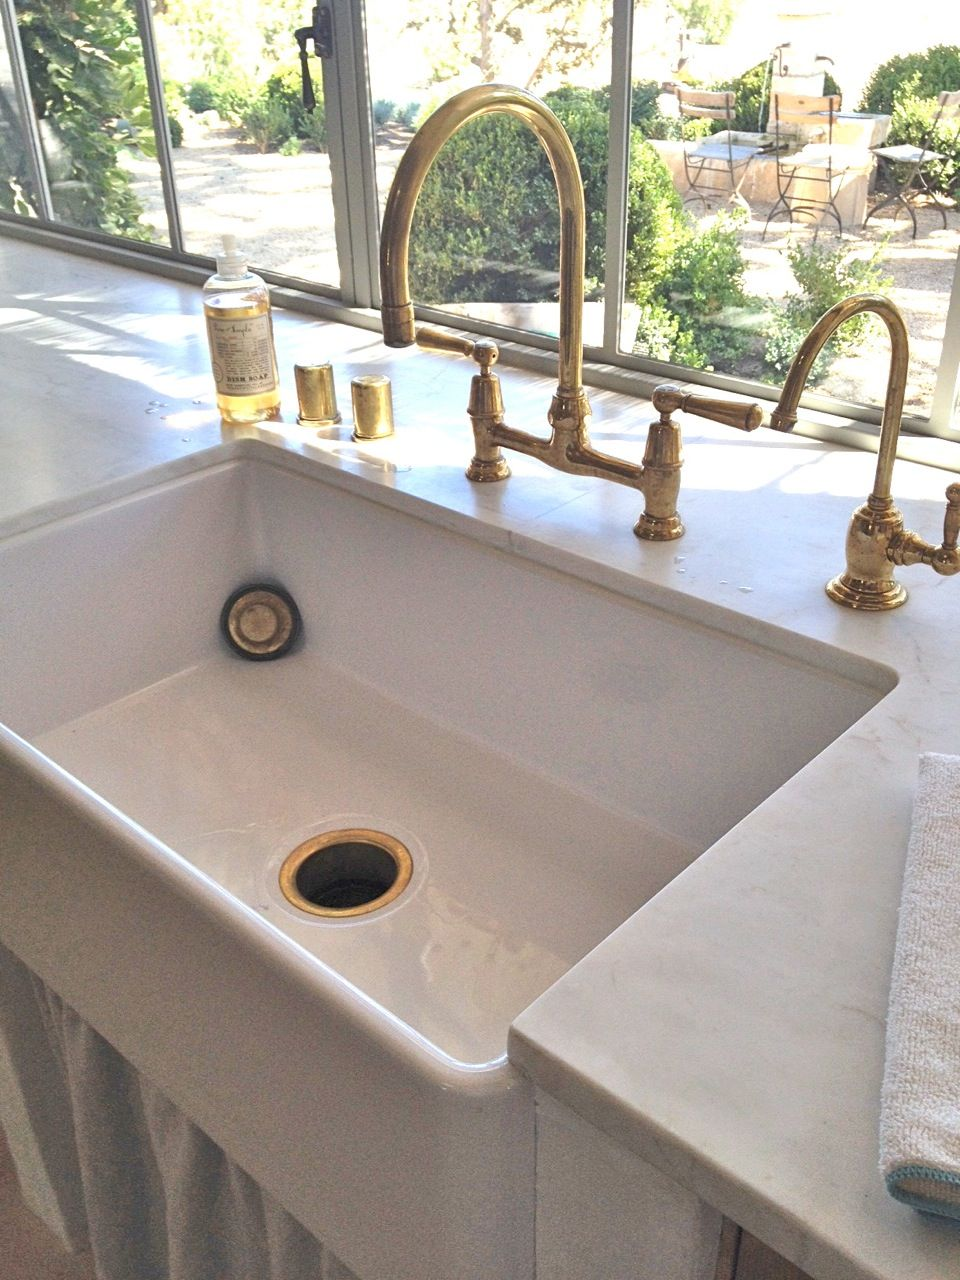 Slim Lined Farmhouse Sink This One Is The 30 Reinhard Single